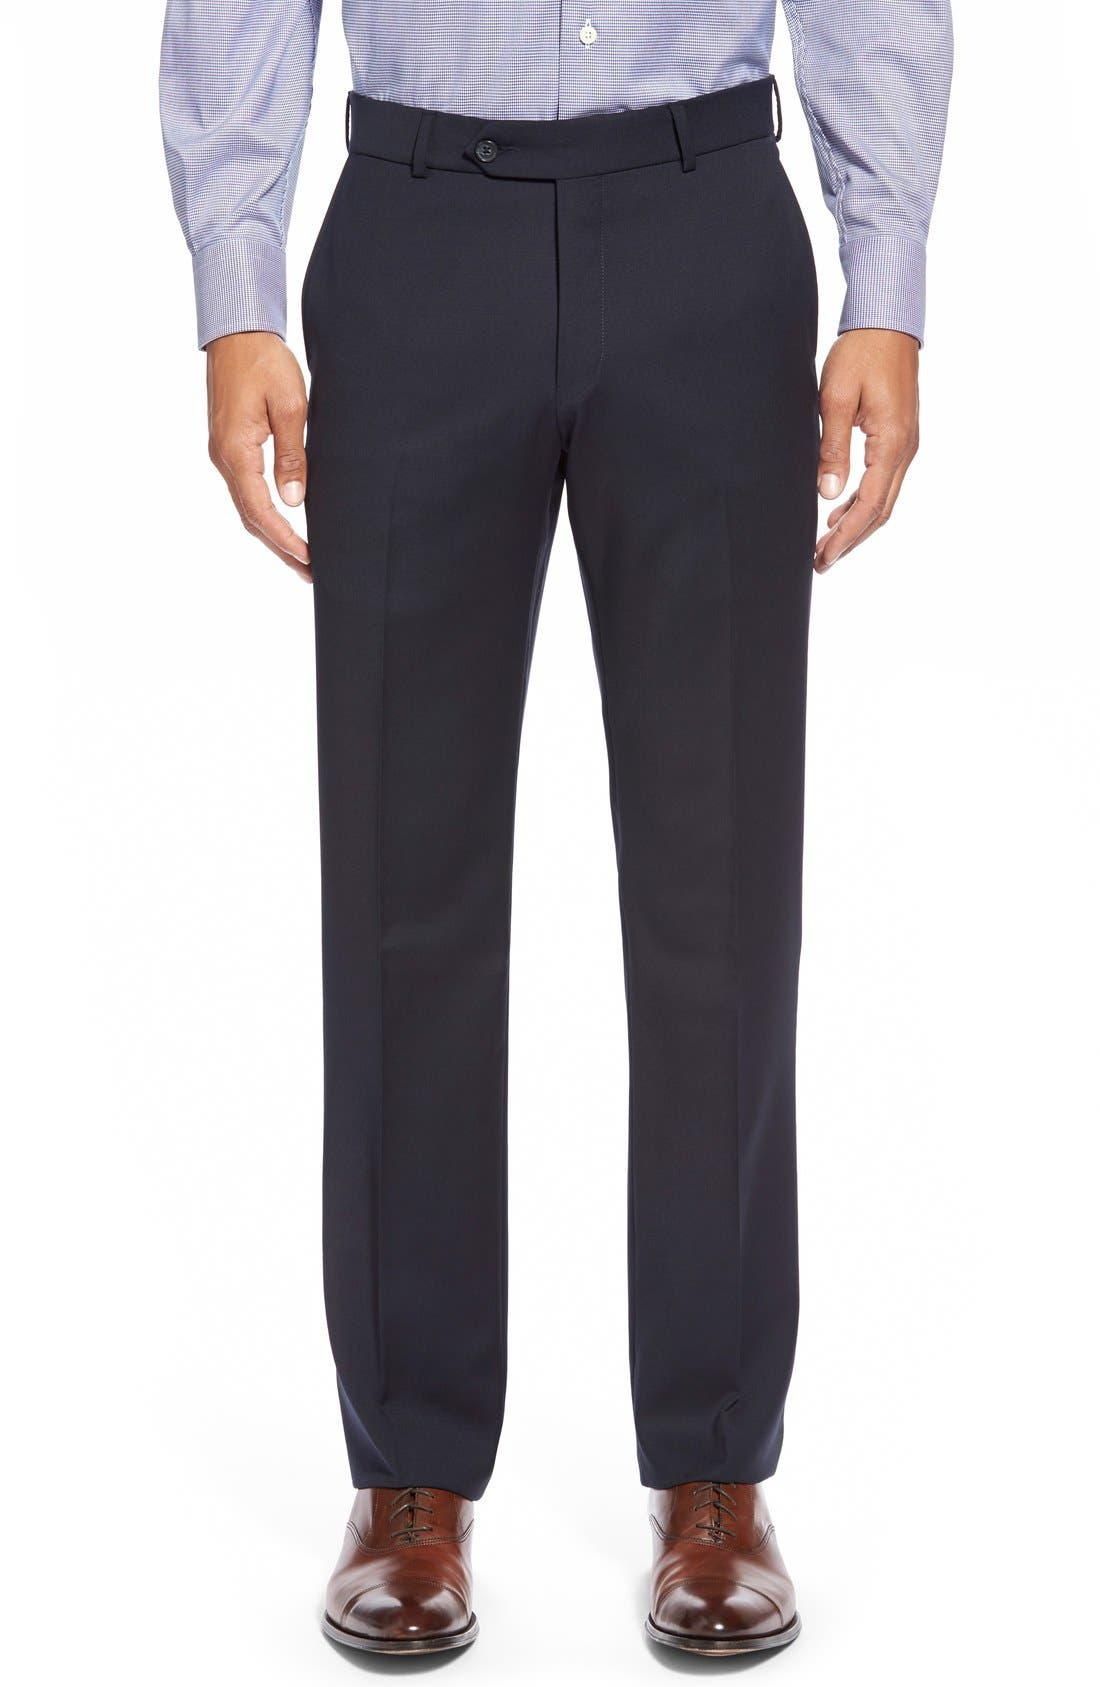 Main Image - BallinFlat Front Solid Wool Trousers